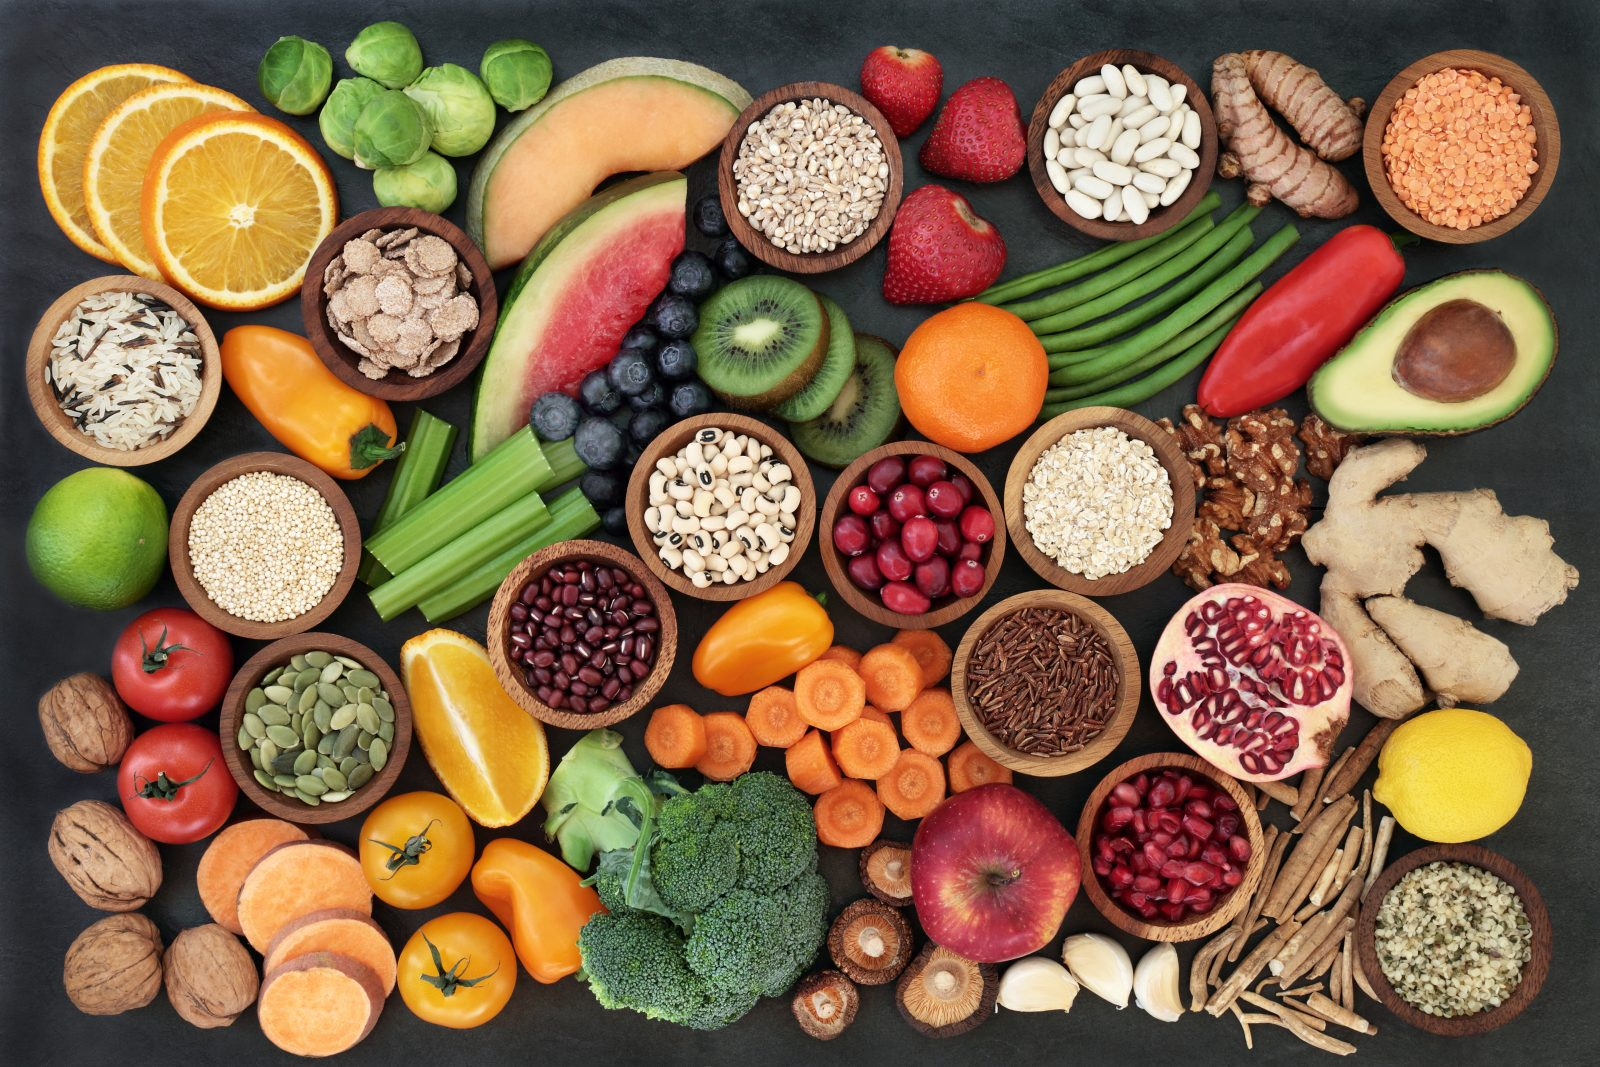 A spread of fruit, vegetables, seeds, pulses, grains, cereals, herbs & spices.